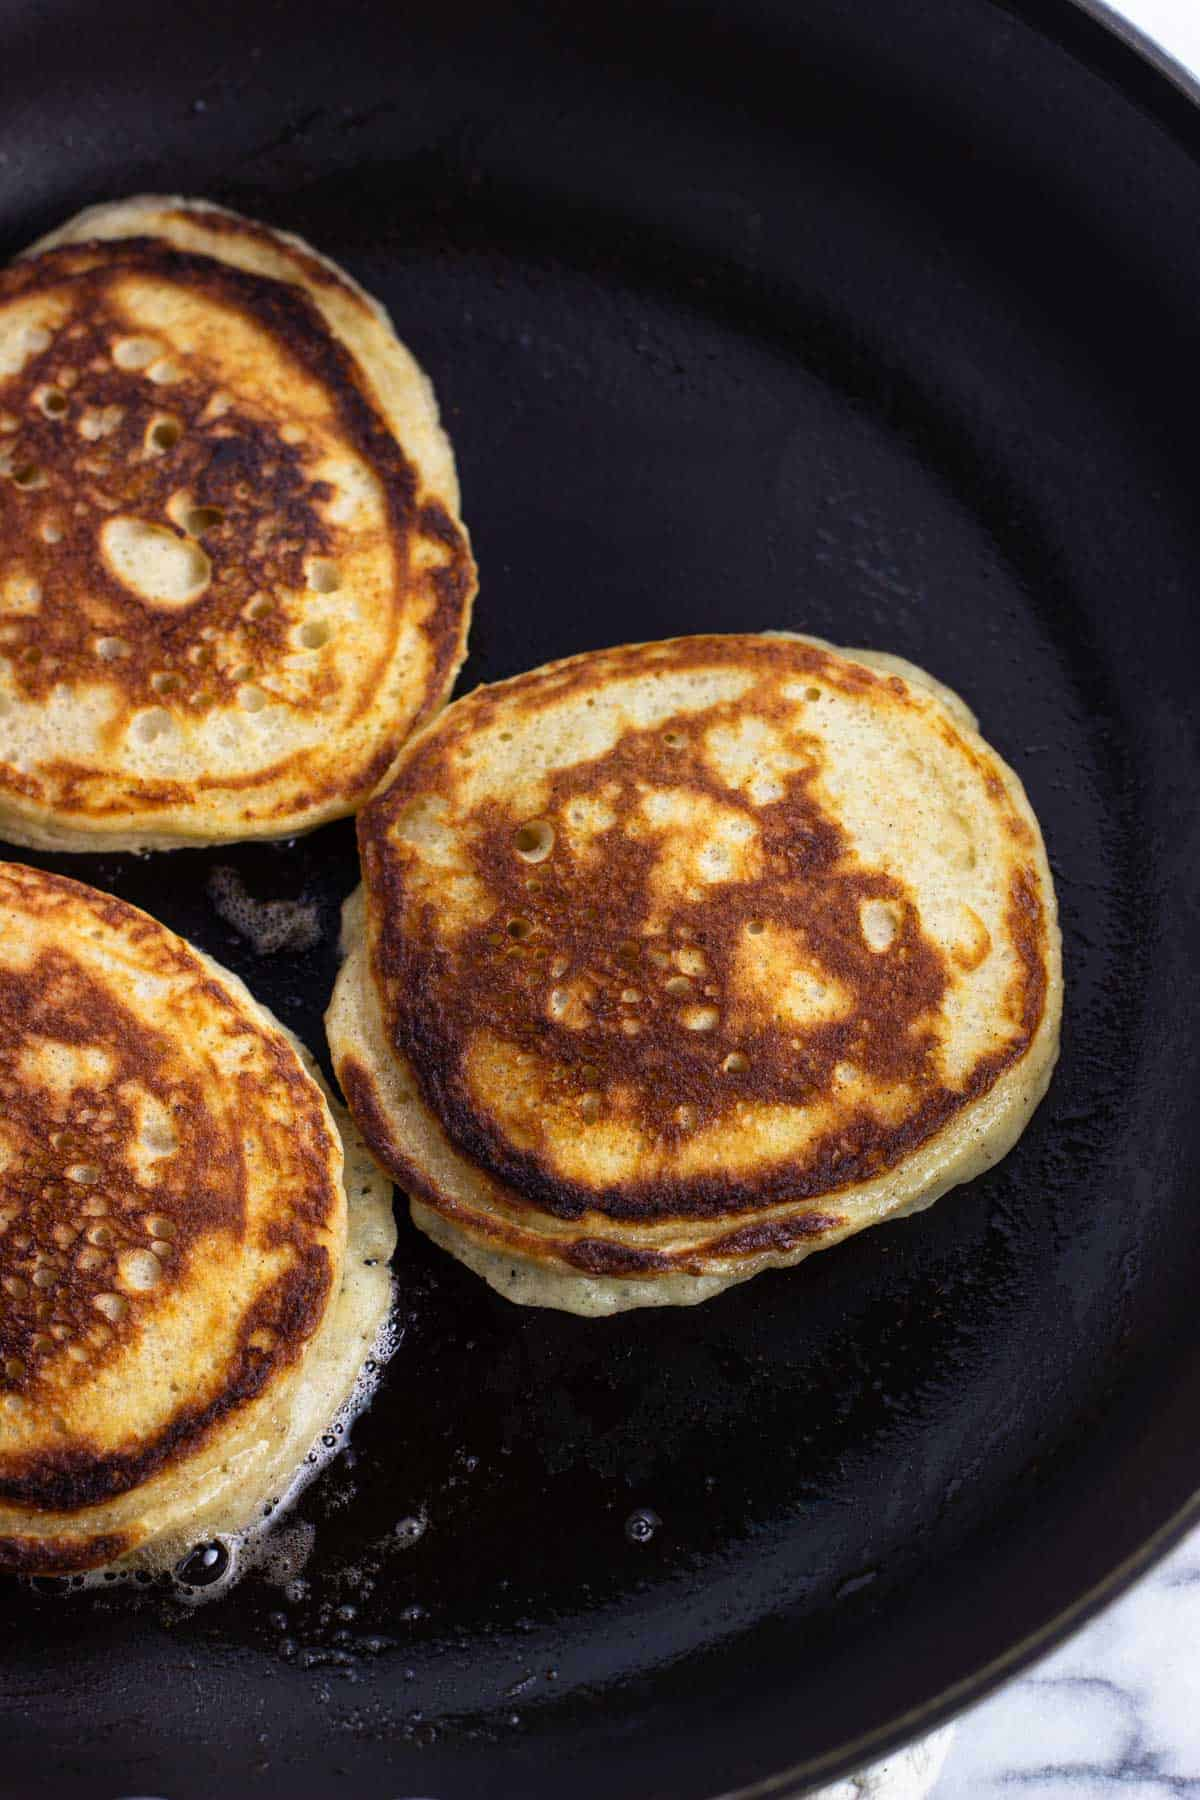 Three half-cooked pancakes just flipped on a pan.